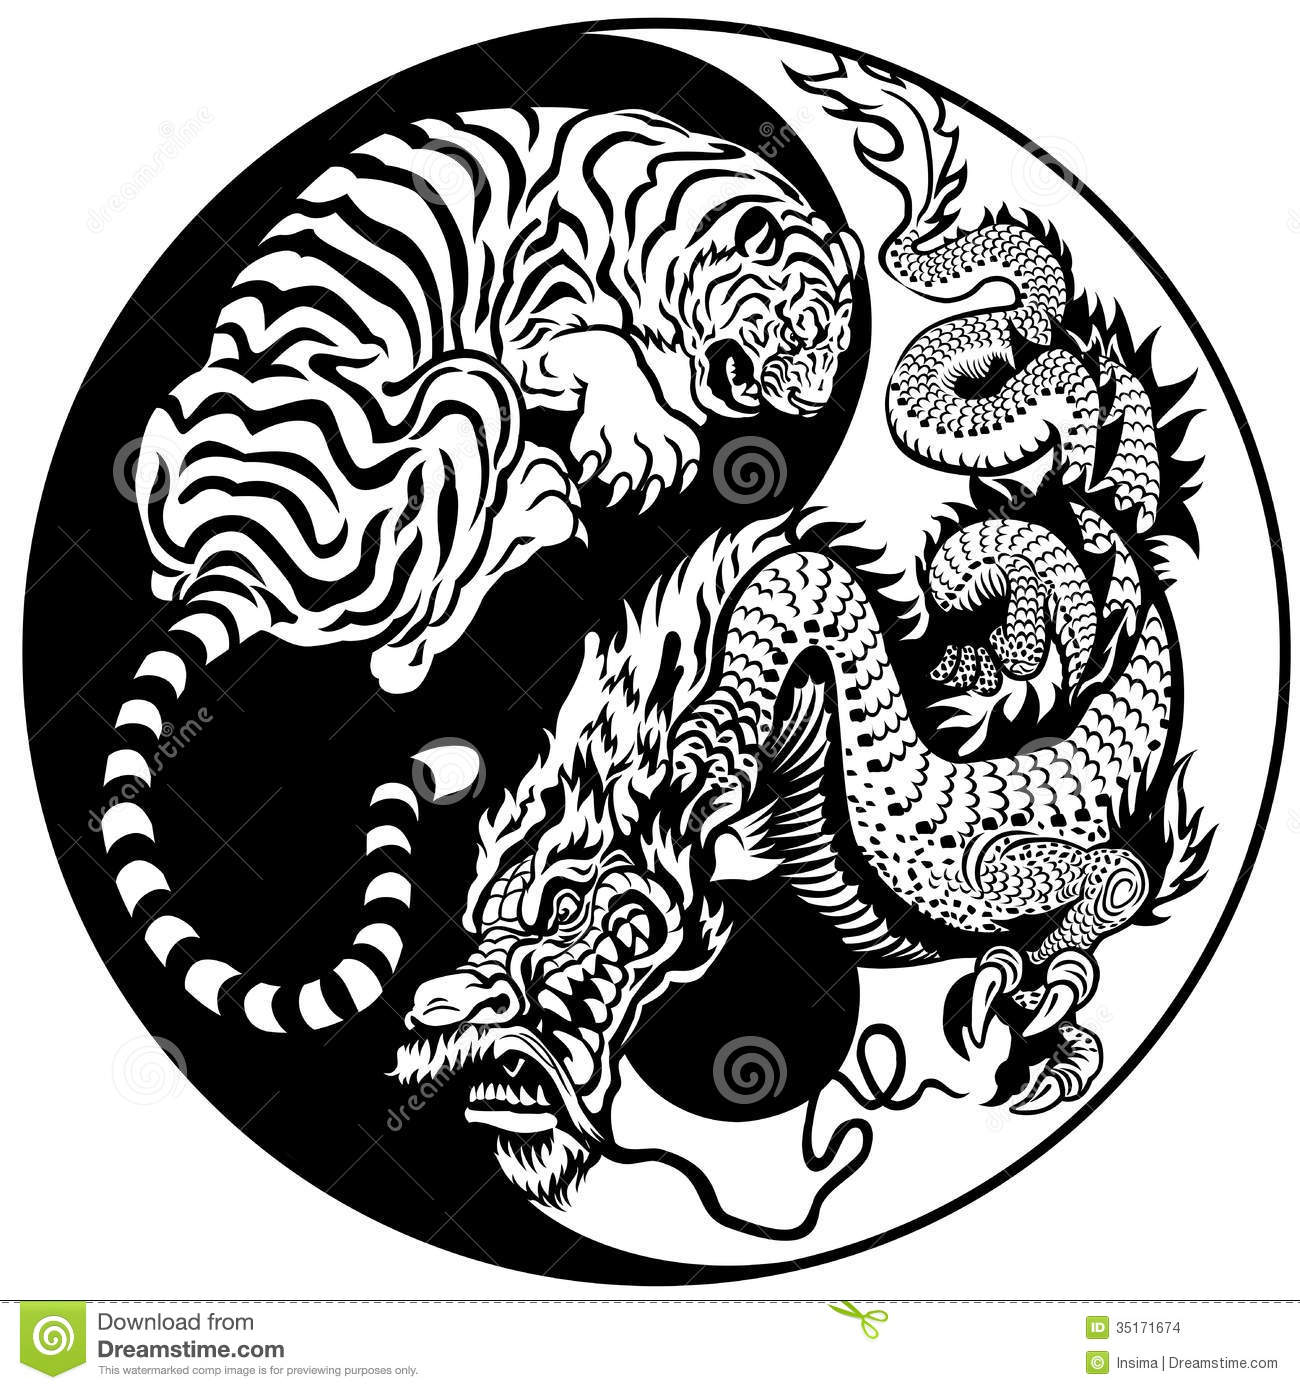 Tiger And Dragon Yin Yang Symbol Illustration 35171674 Megapixl